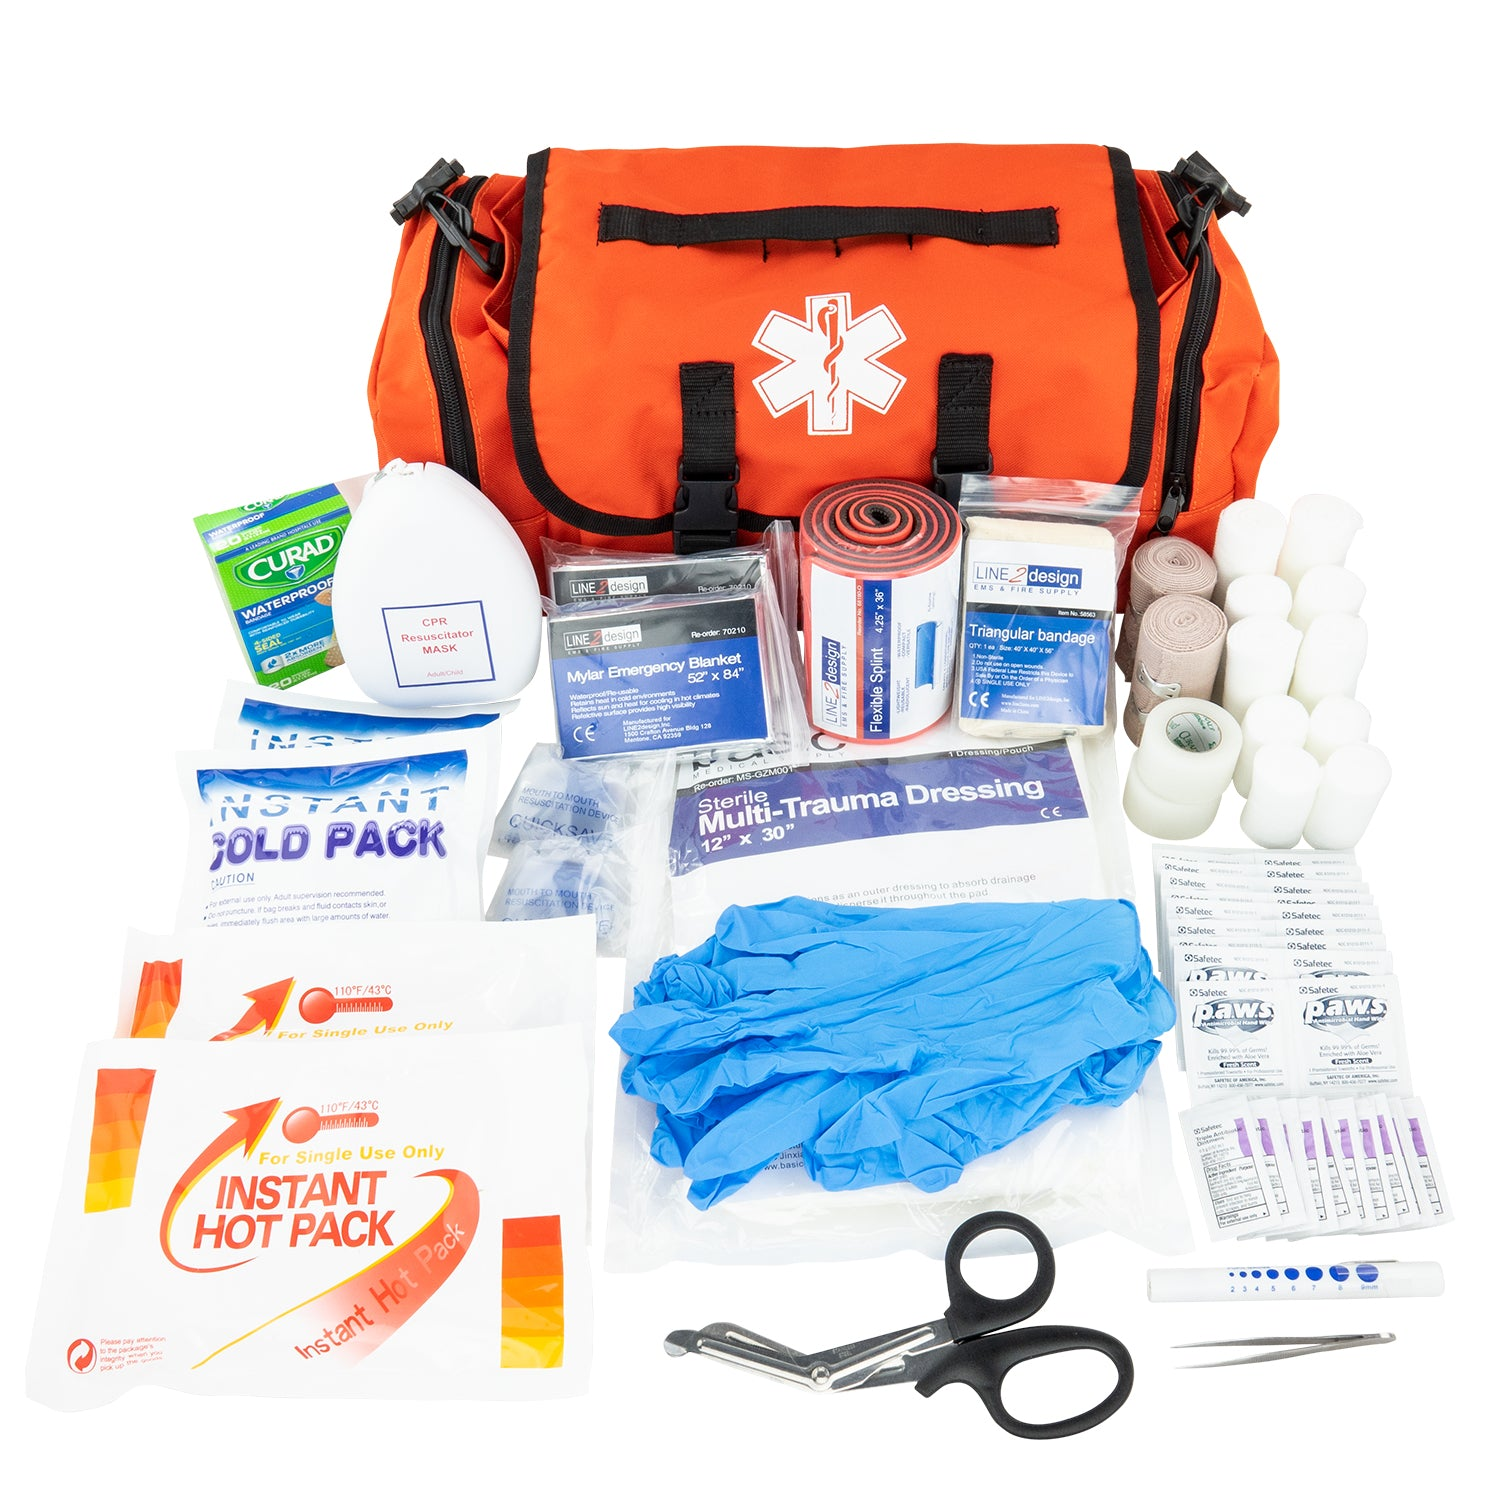 LINE2design Emergency First Aid Responder Kit Medical EMS Economic Fully Stocked Bag For All Emergencies - Orange